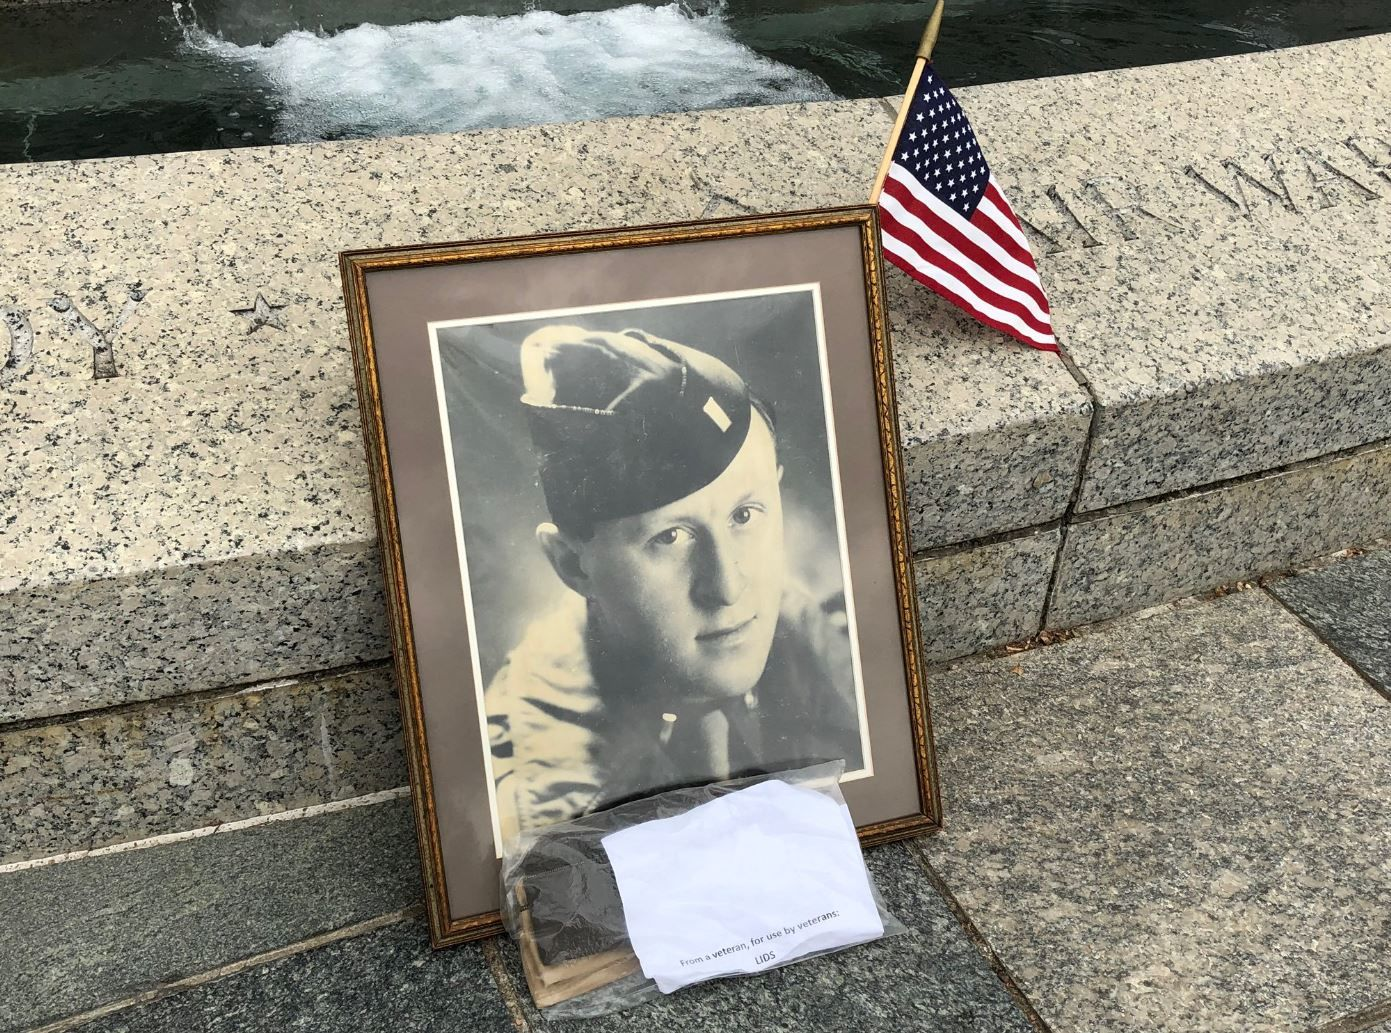 Those who died  were honored at the National World War II Memorial in D.C. on the eve of the 75th anniversary of D-Day. (WTOP/Michelle Basch)